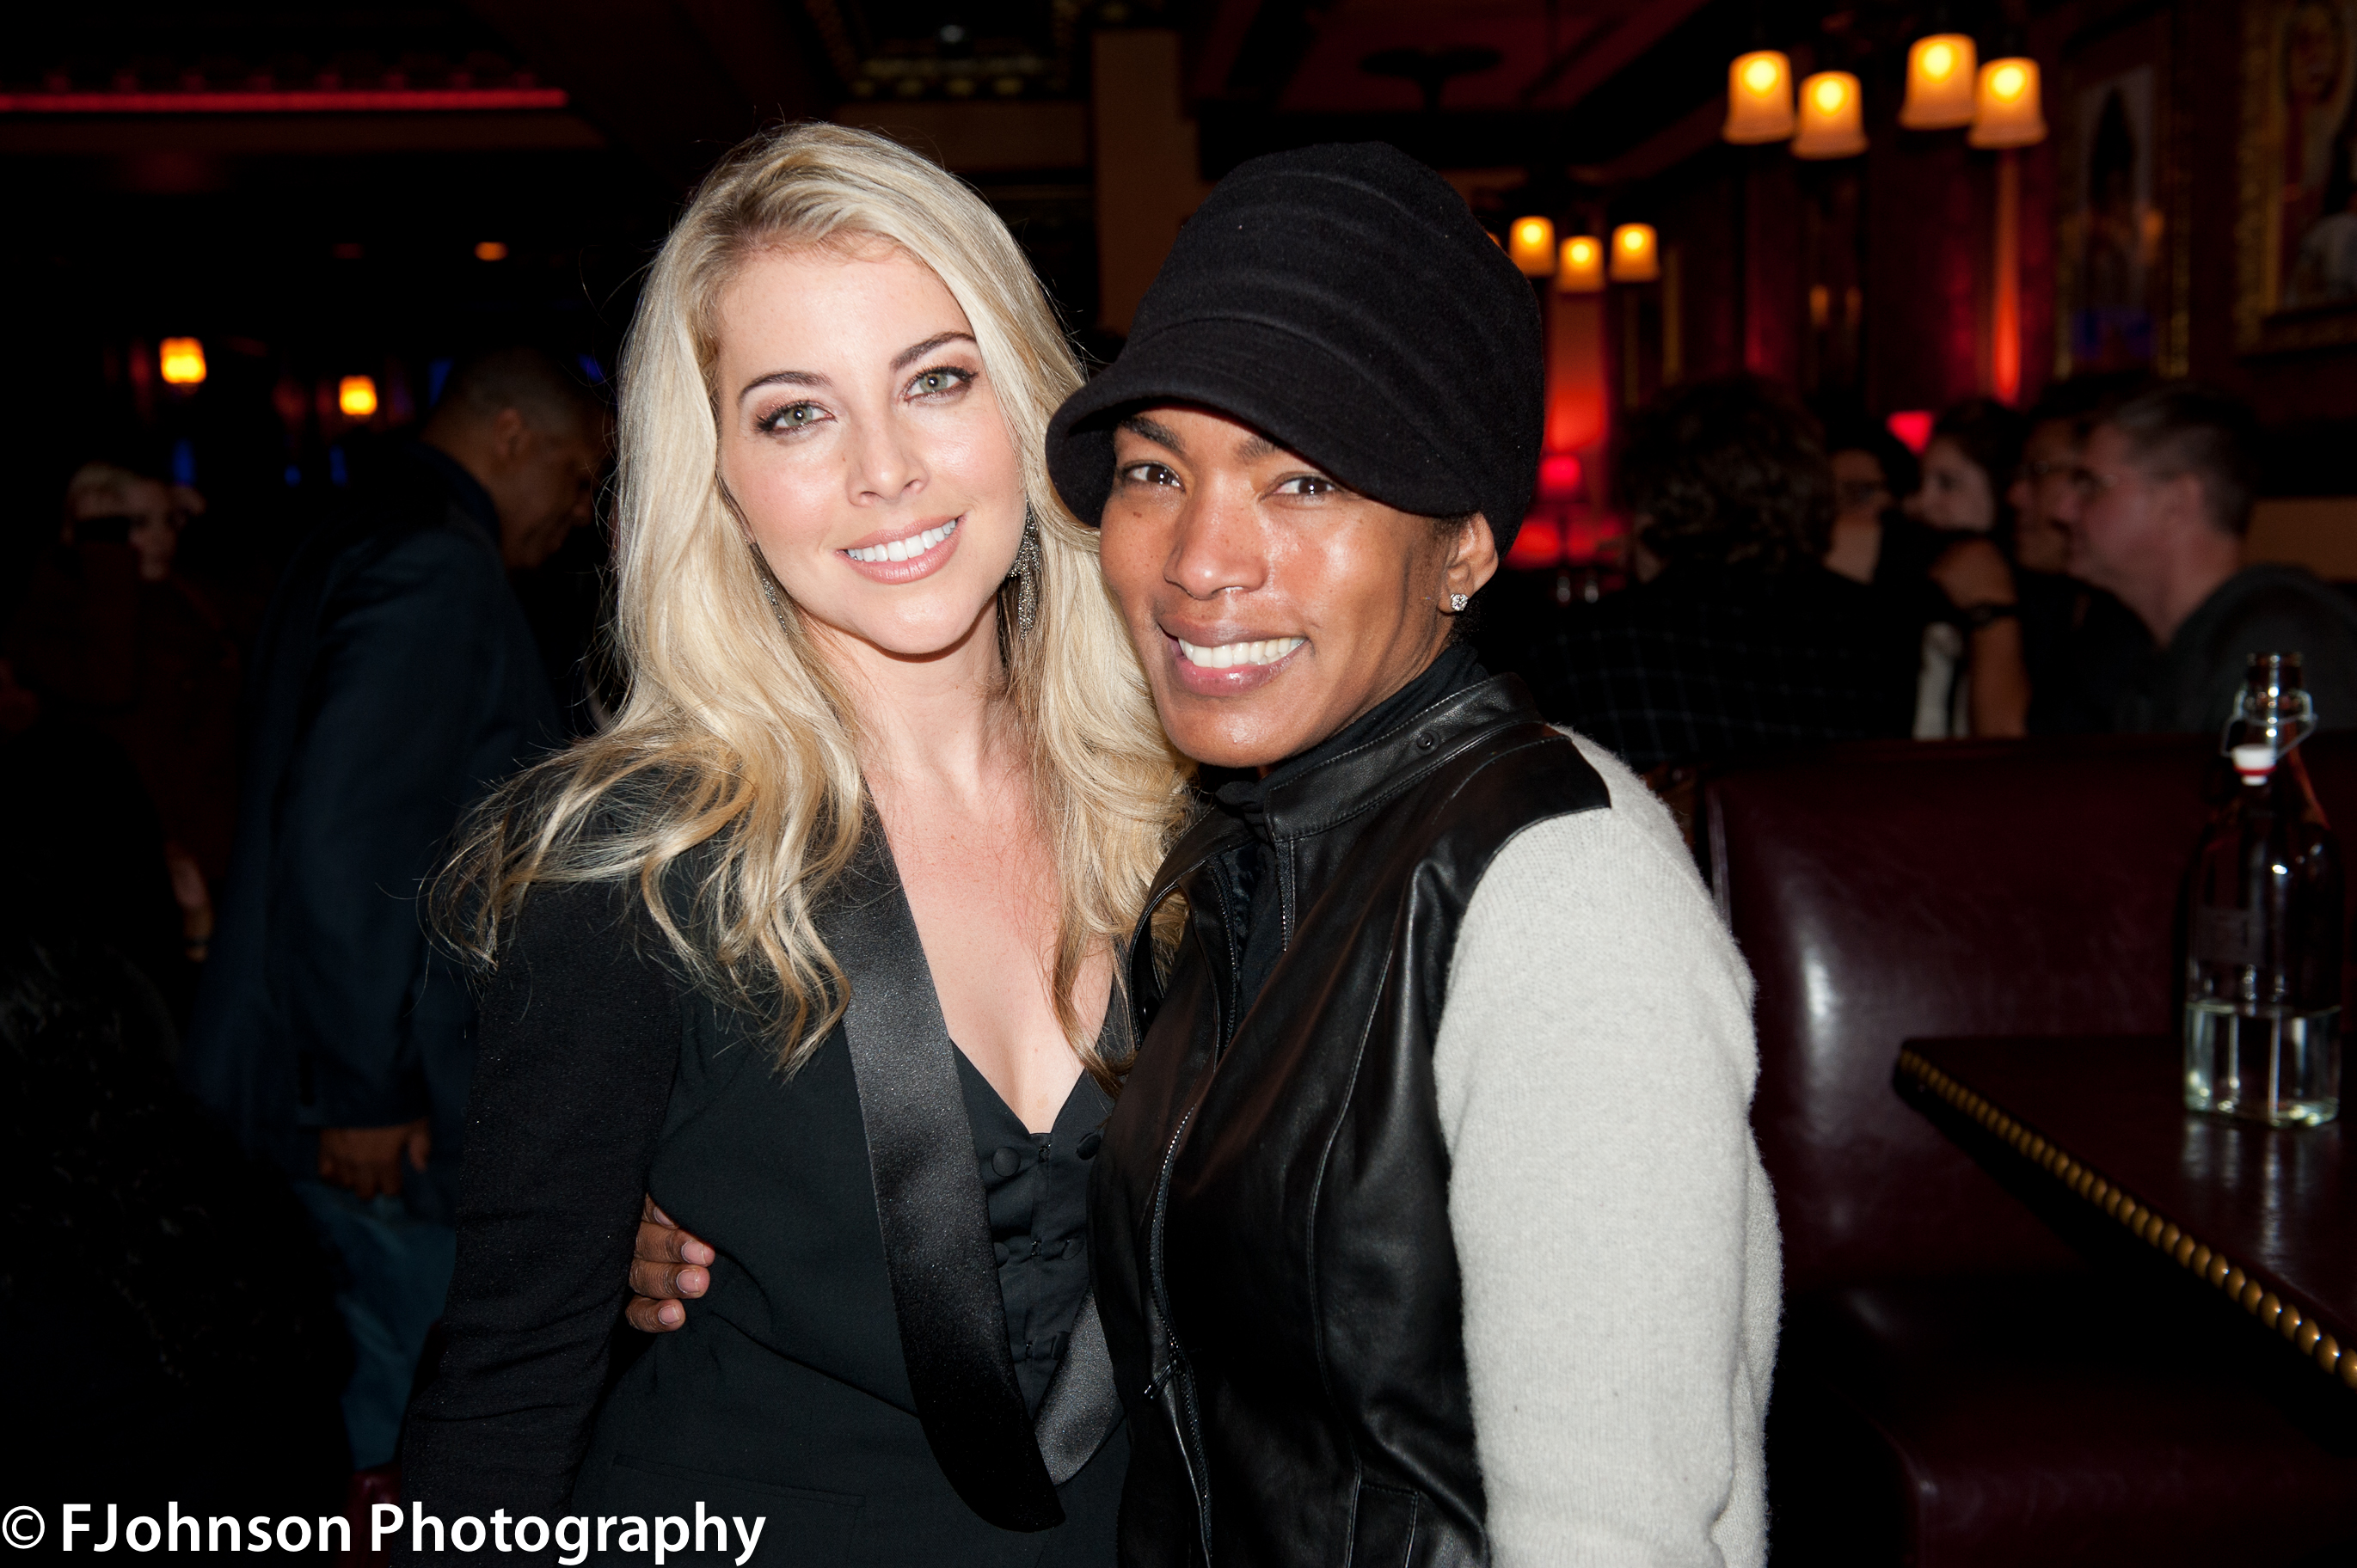 Morgan James and Angela Bassett